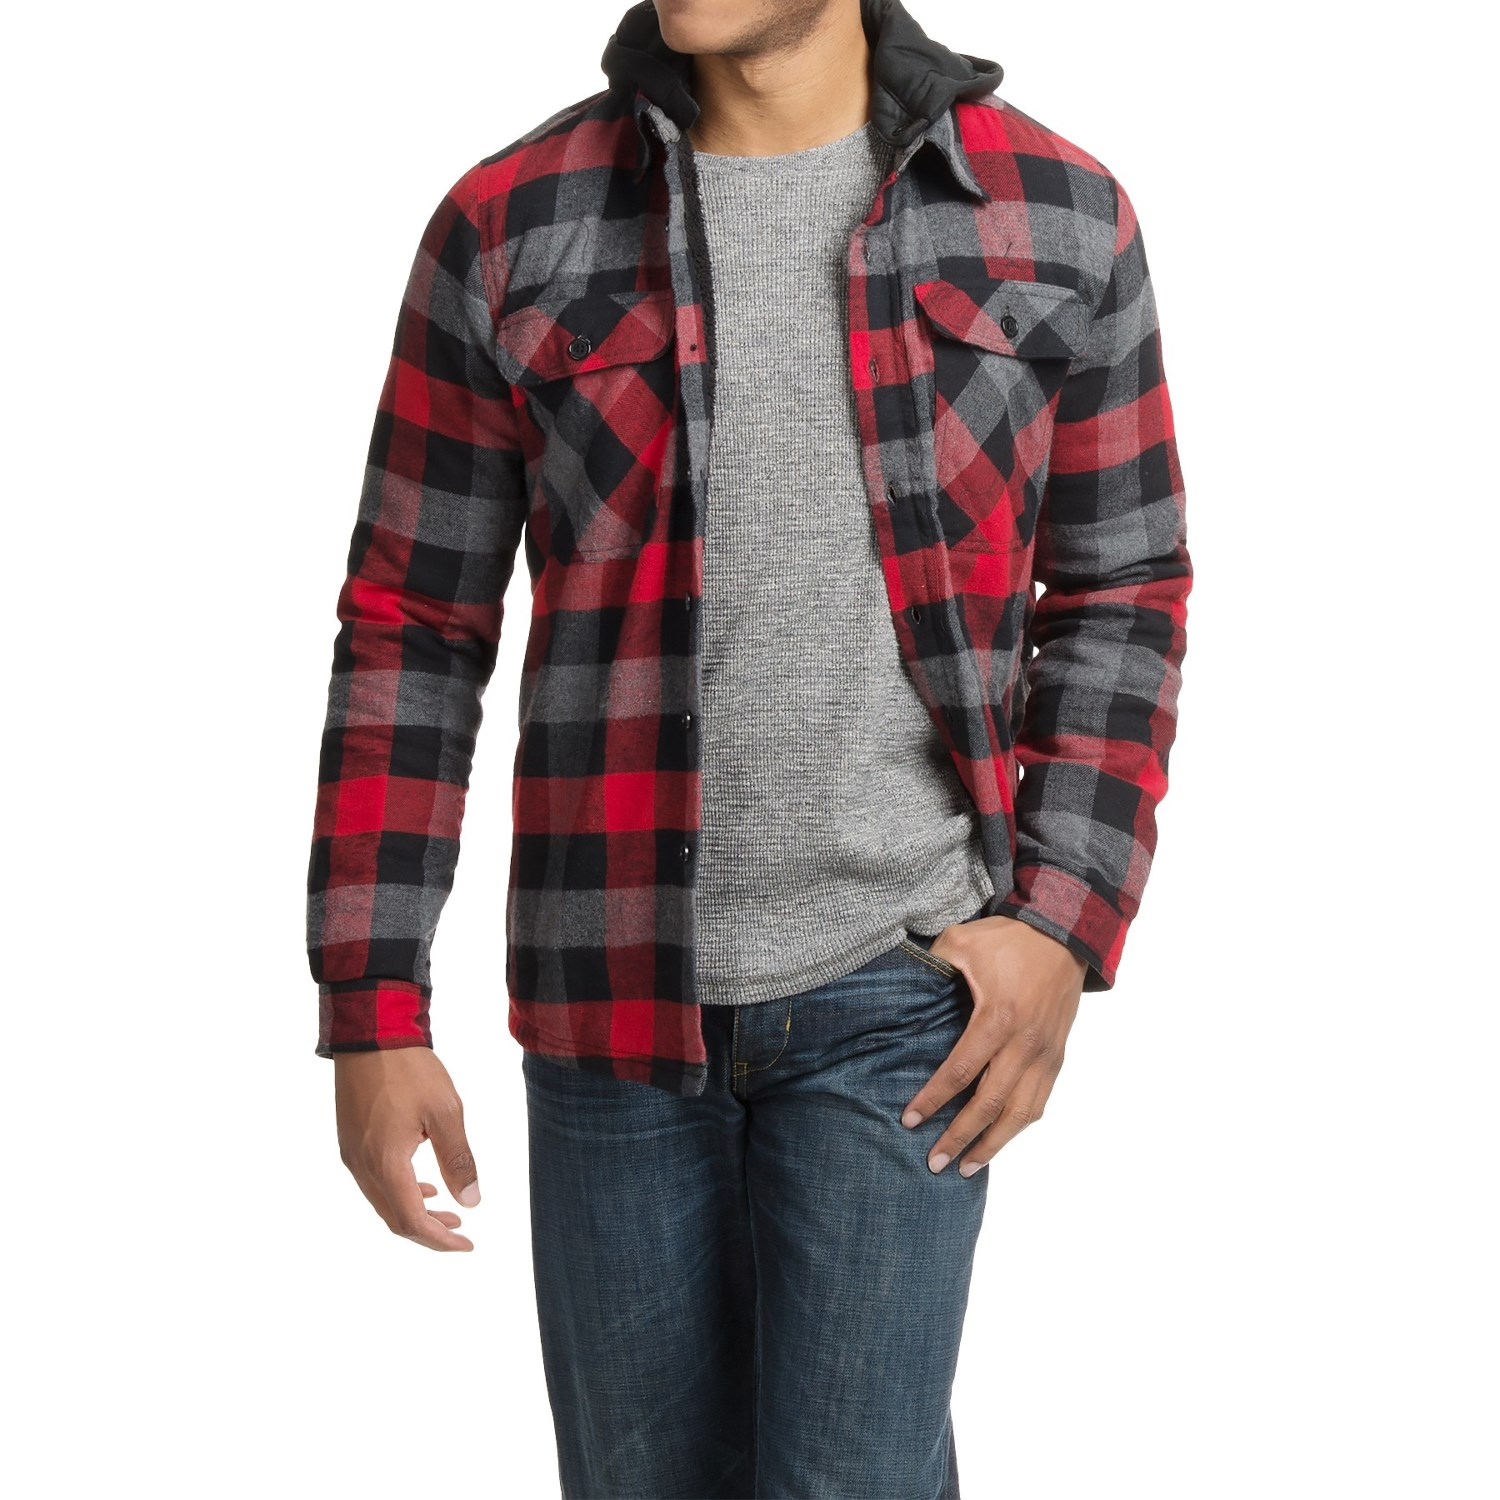 Women 39 s hooded flannel shirt australia english sweater vest for Places to buy flannel shirts